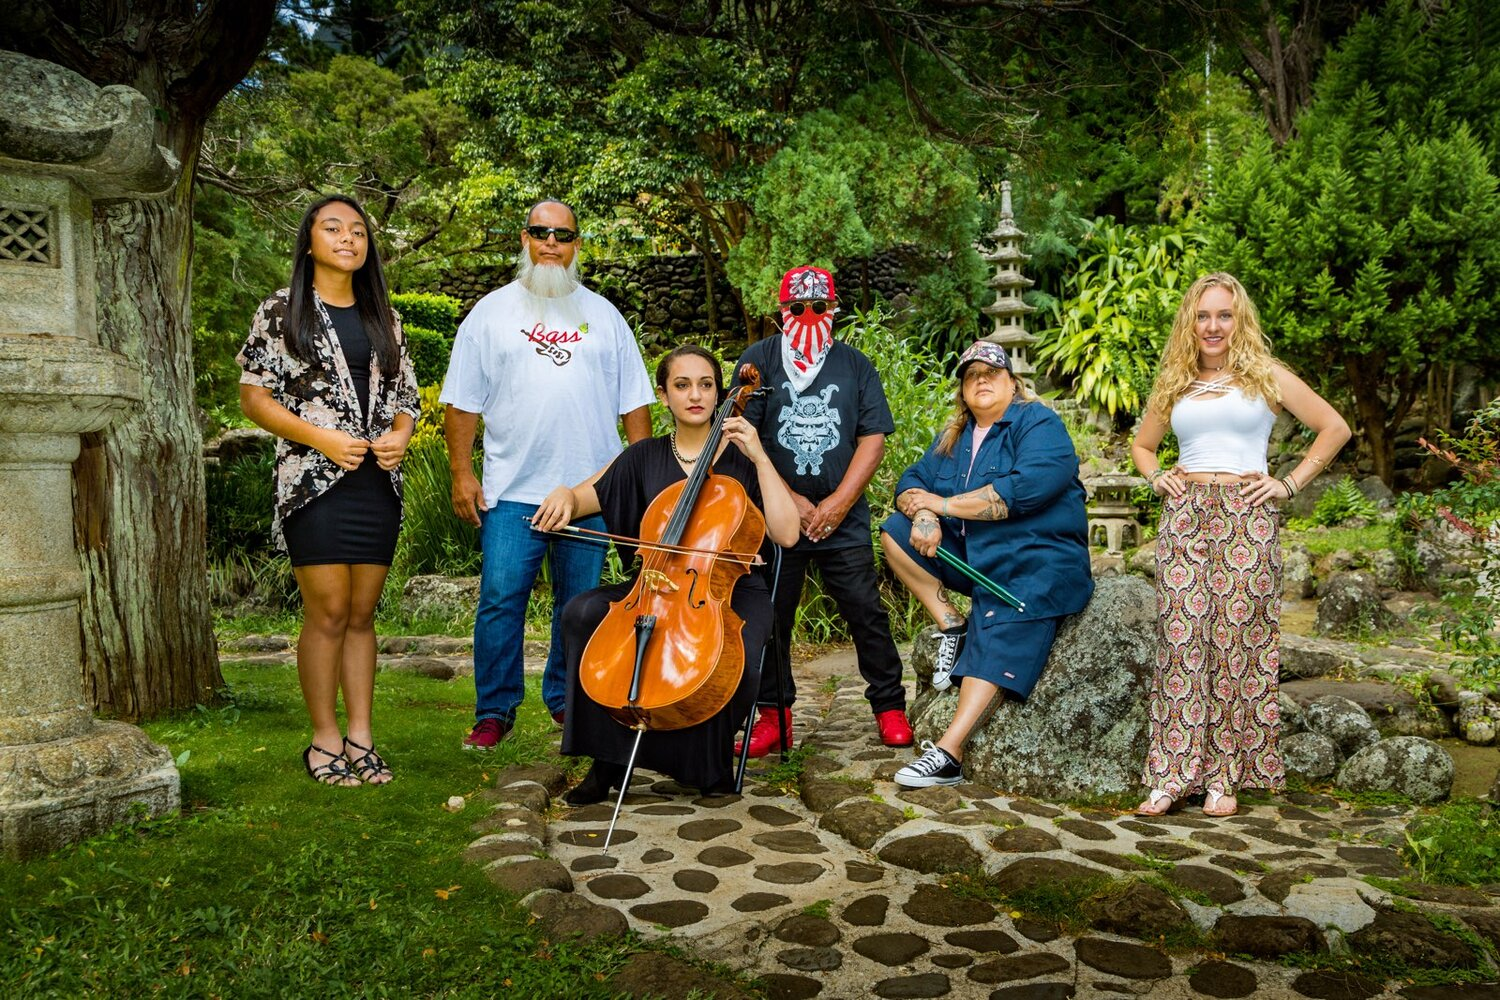 Madame Butterfly will perform on September 22nd. According to the band, they have a unique style and sound and want to bring a new rhythm to Maui's music scene.